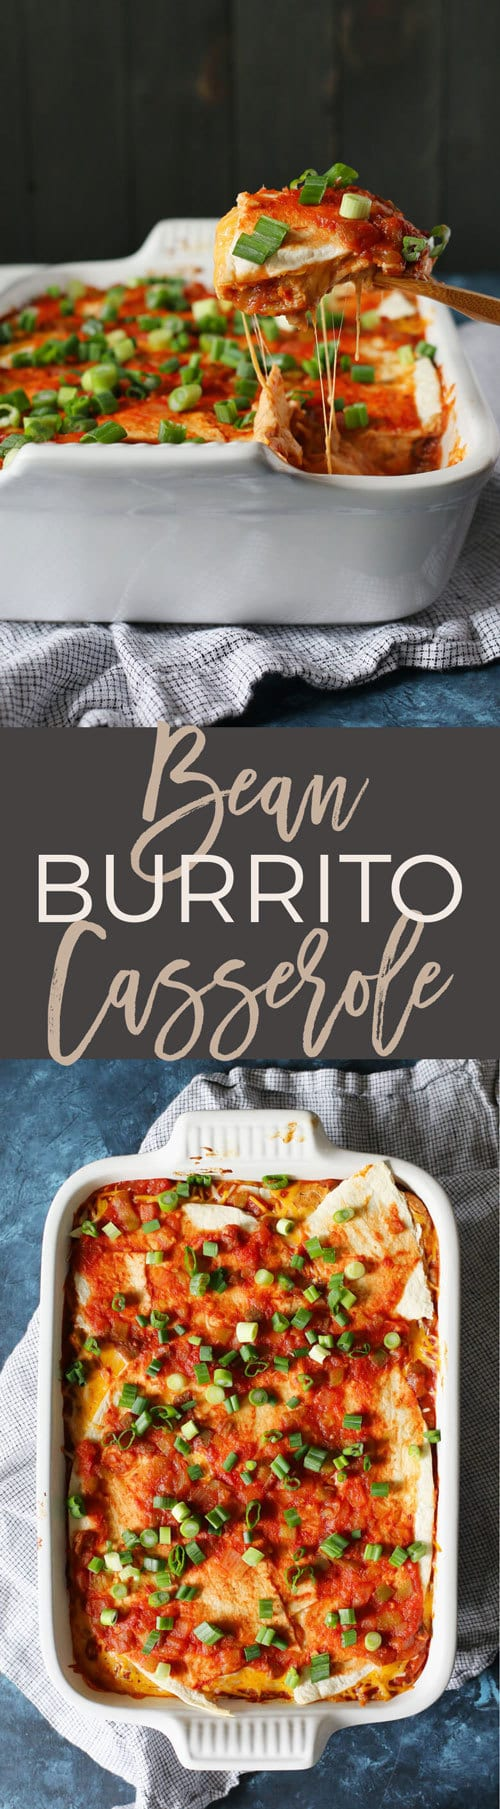 This bean burrito casserole is the perfect weeknight vegetarian freezer meal. Pull the casserole dish out of the freezer and defrost it during the day. Pop it in the oven after work and have dinner on the table in just 30 minutes!